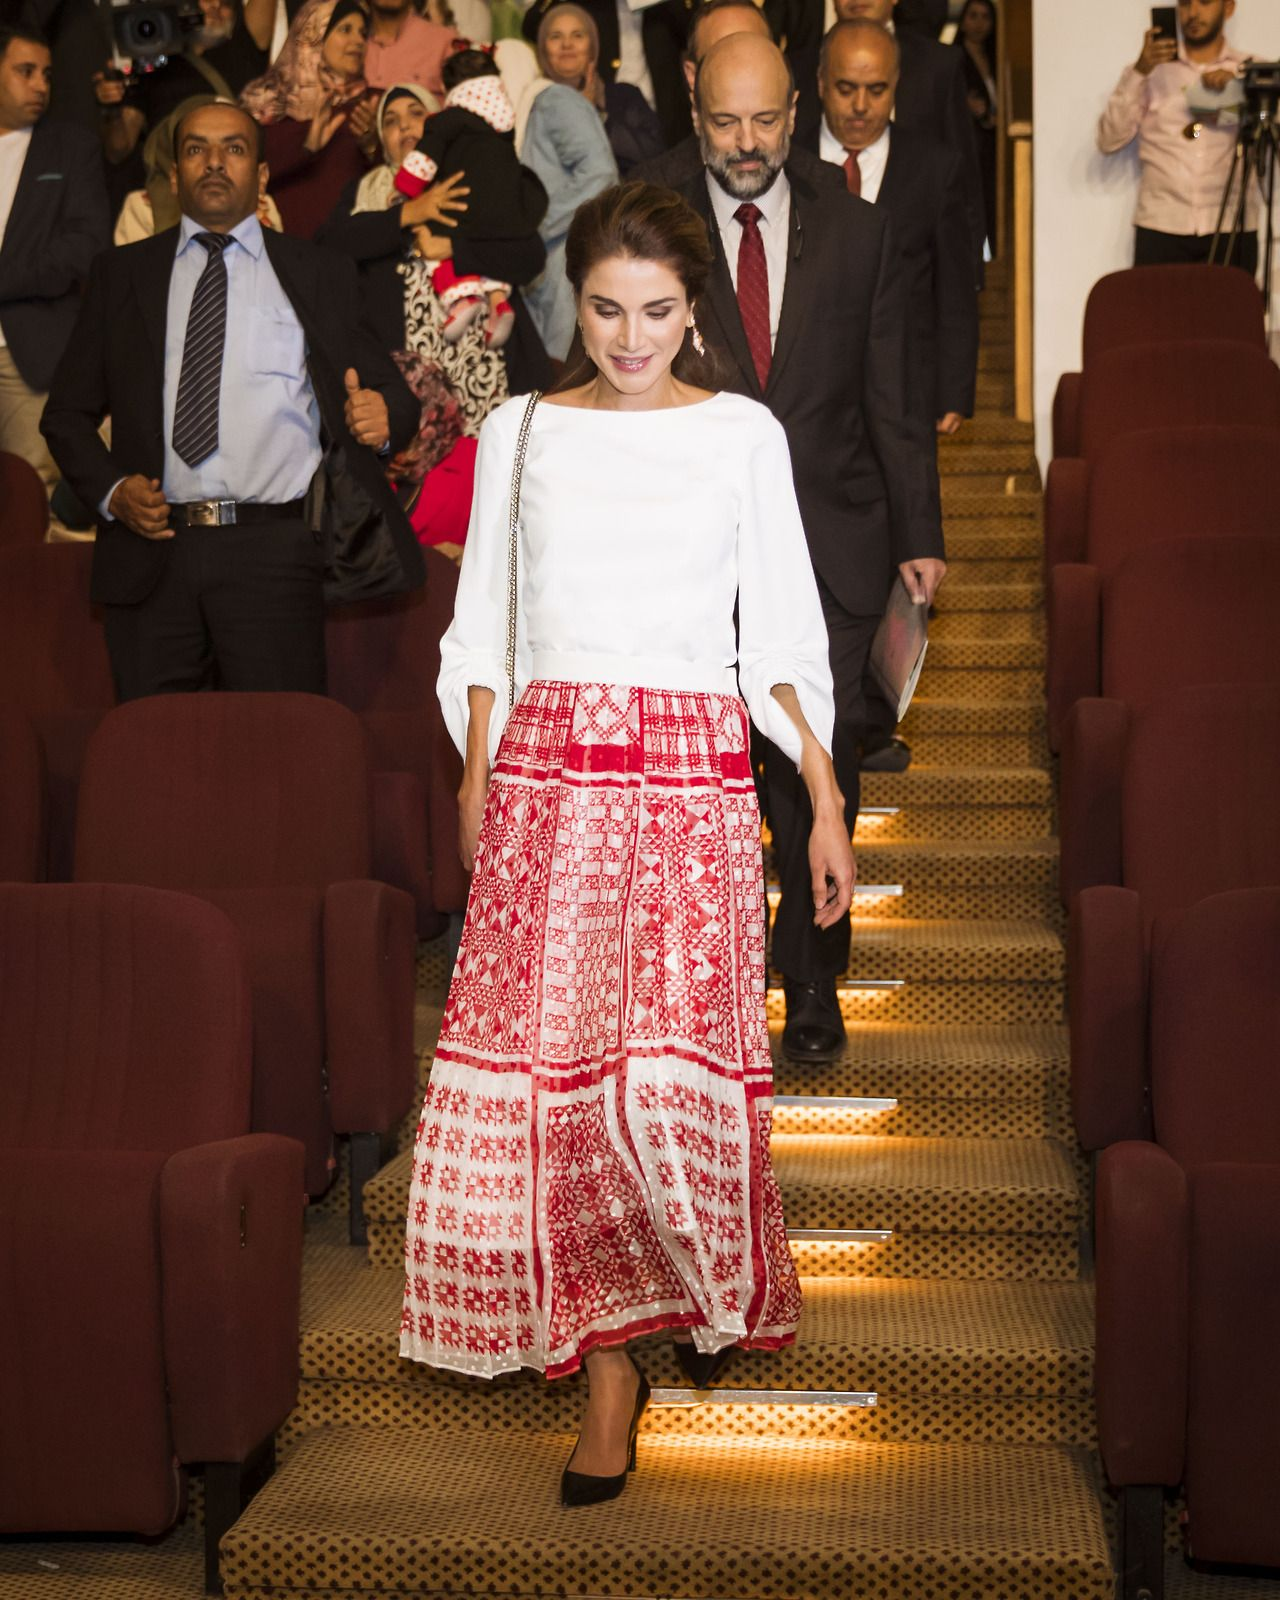 16 October 2017 - Queen Rania attends diploma presentation ceremony at the Queen Rania Teacher Academy in Amman - blouse by Tibi, skirt by Fendi, shoes by Dior